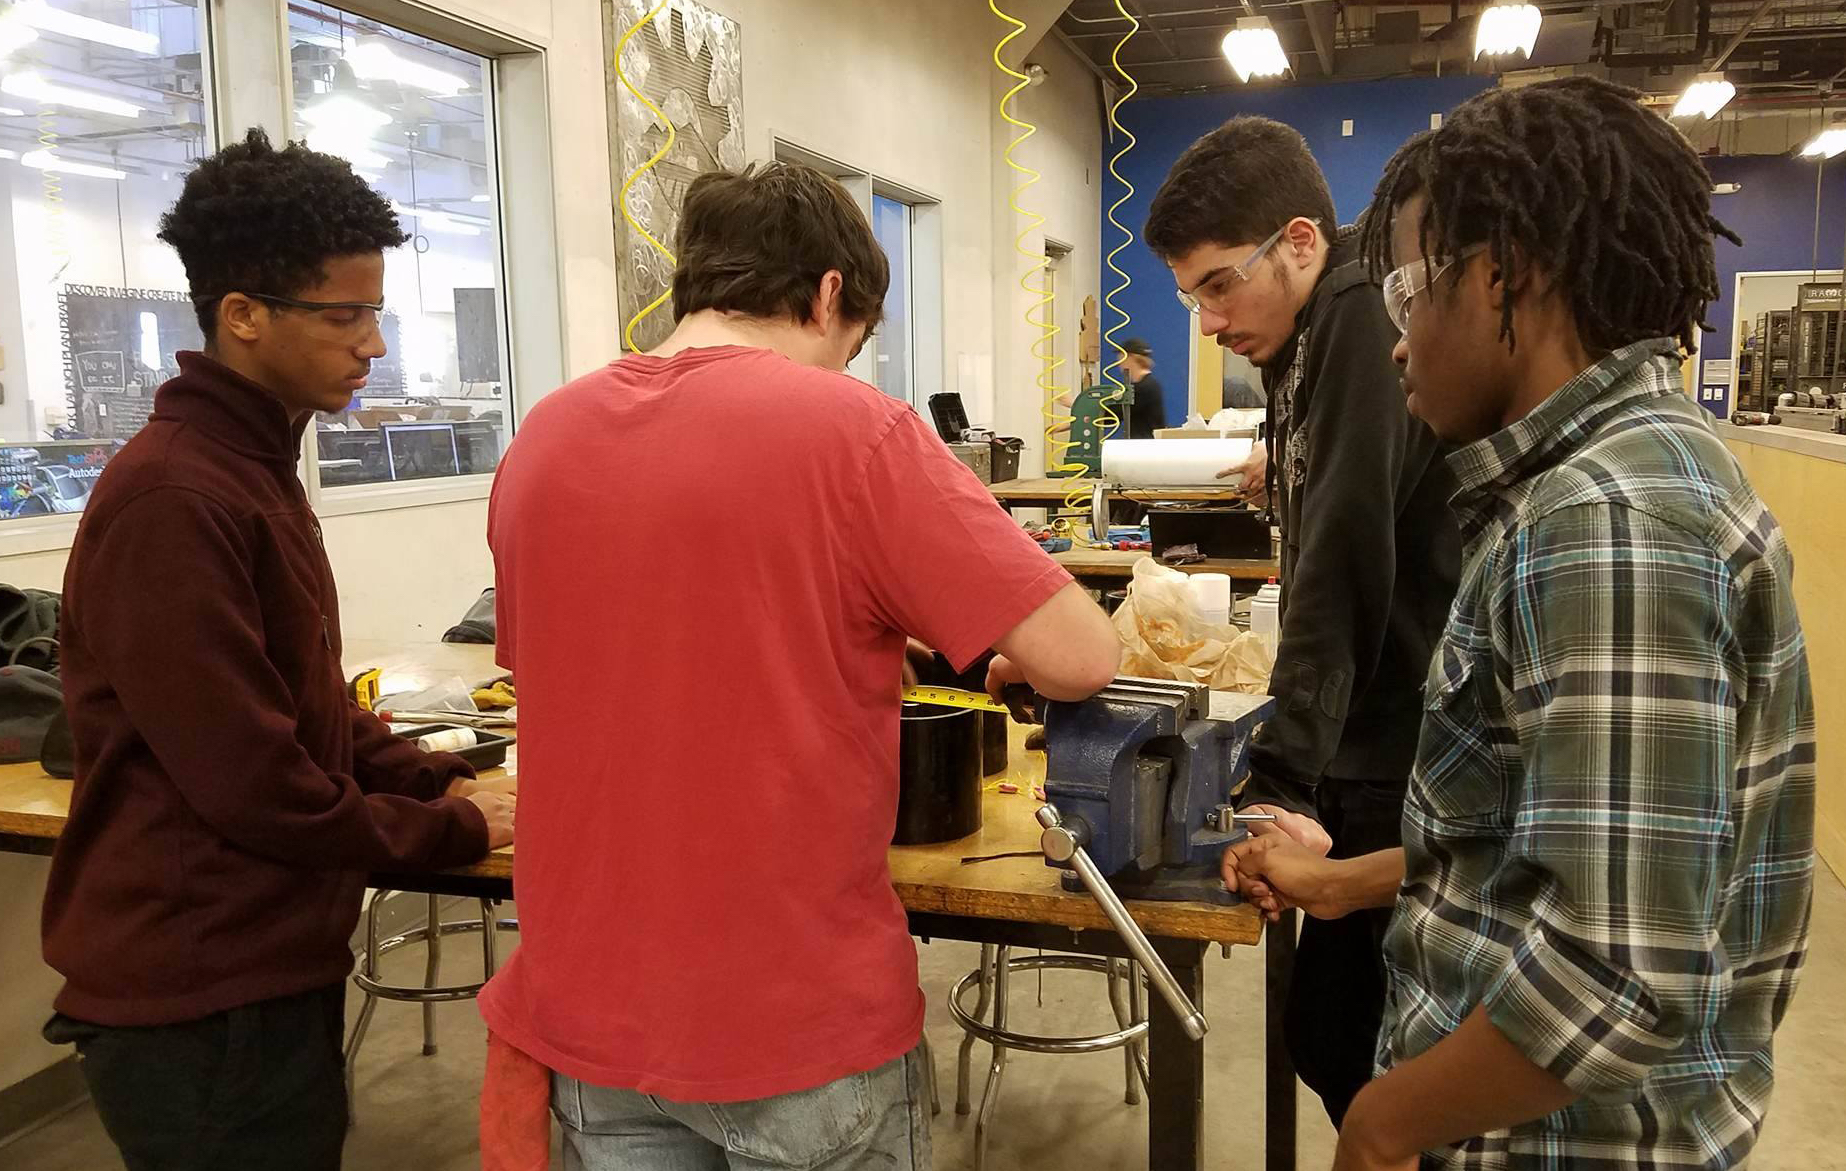 """Photo of four students standing a work table with a caption of """"Gashaw Bizana (far left), Alek Cook (center left), Alessandro Laspina  (center right) and Wakhile Shongwe (far right) working on manufacturing of the team's prototype design of the auger. Photo courtesy of Next Level Devils"""""""